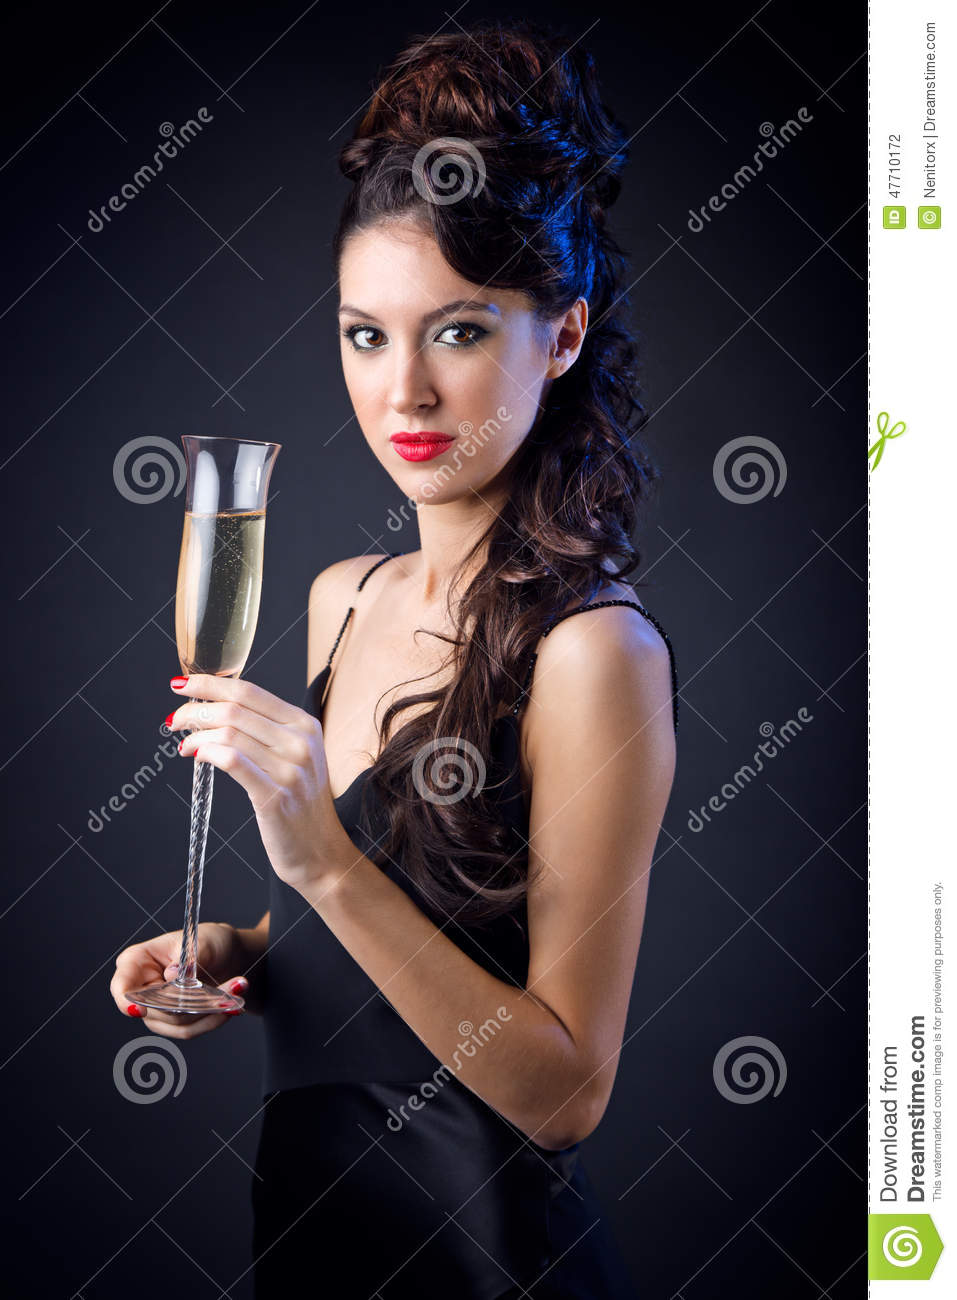 Beautiful Party Girl With Wine Glass Royalty Free Stock